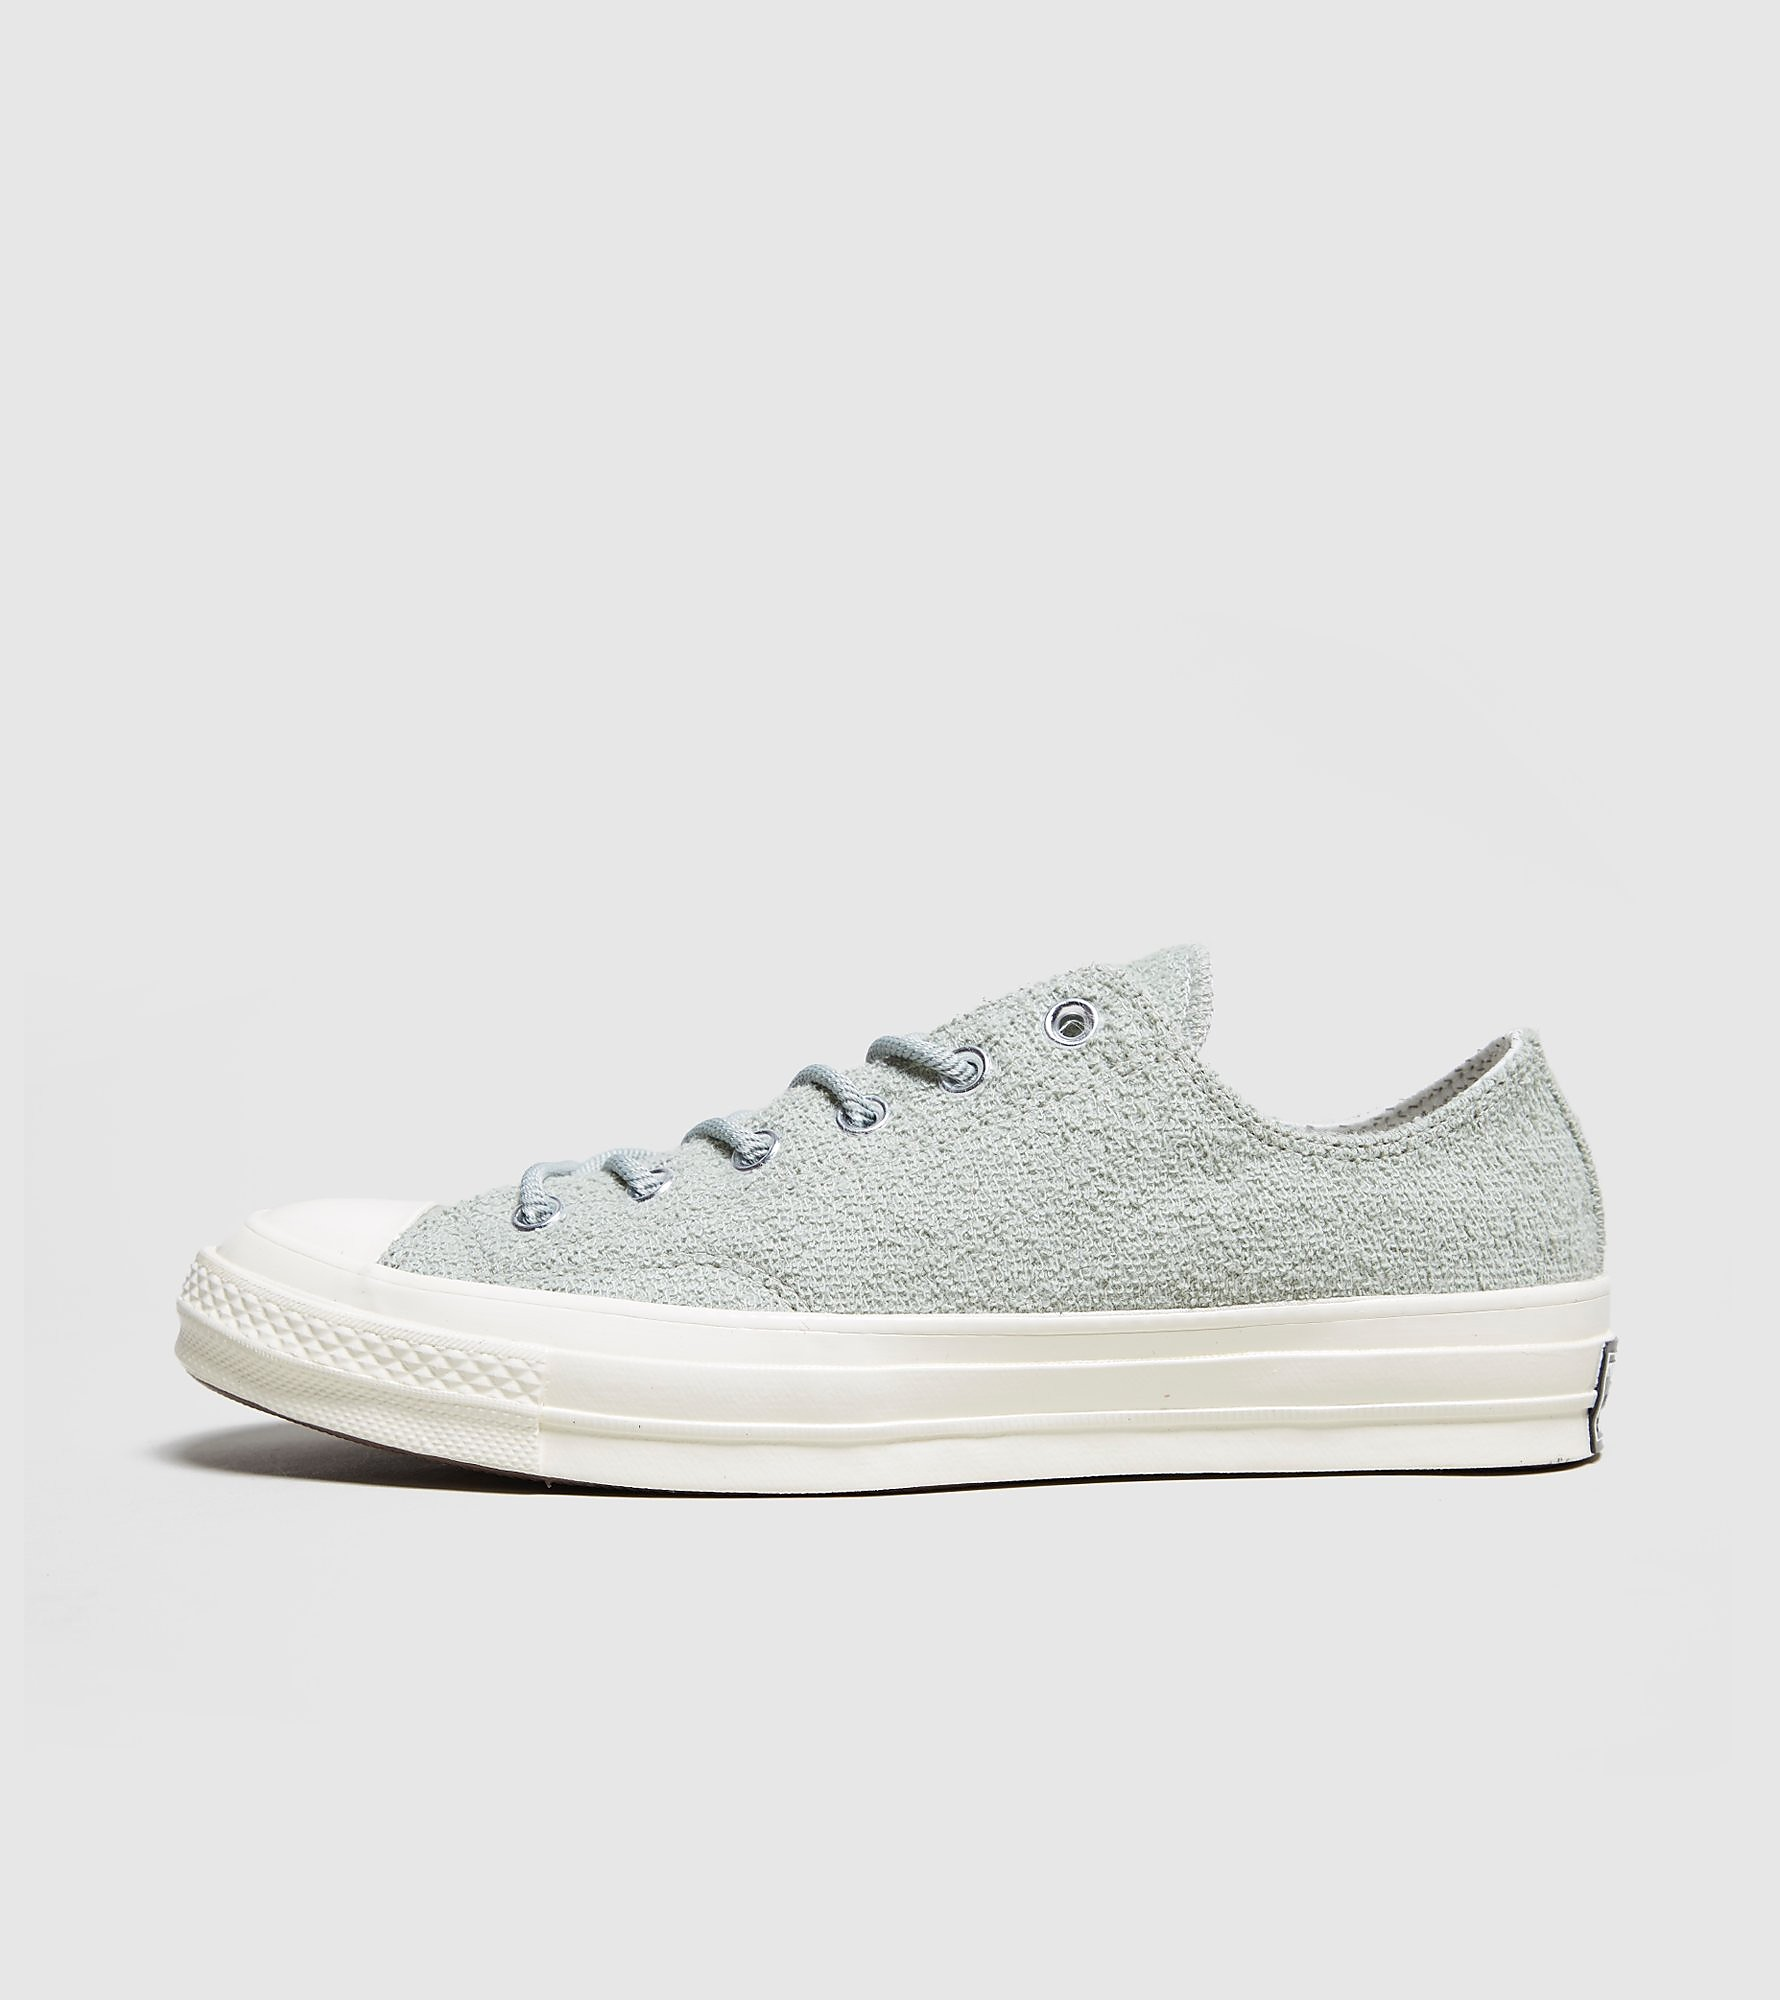 Converse Chuck Taylor All Star 70s Ox 'Reverse Terry'